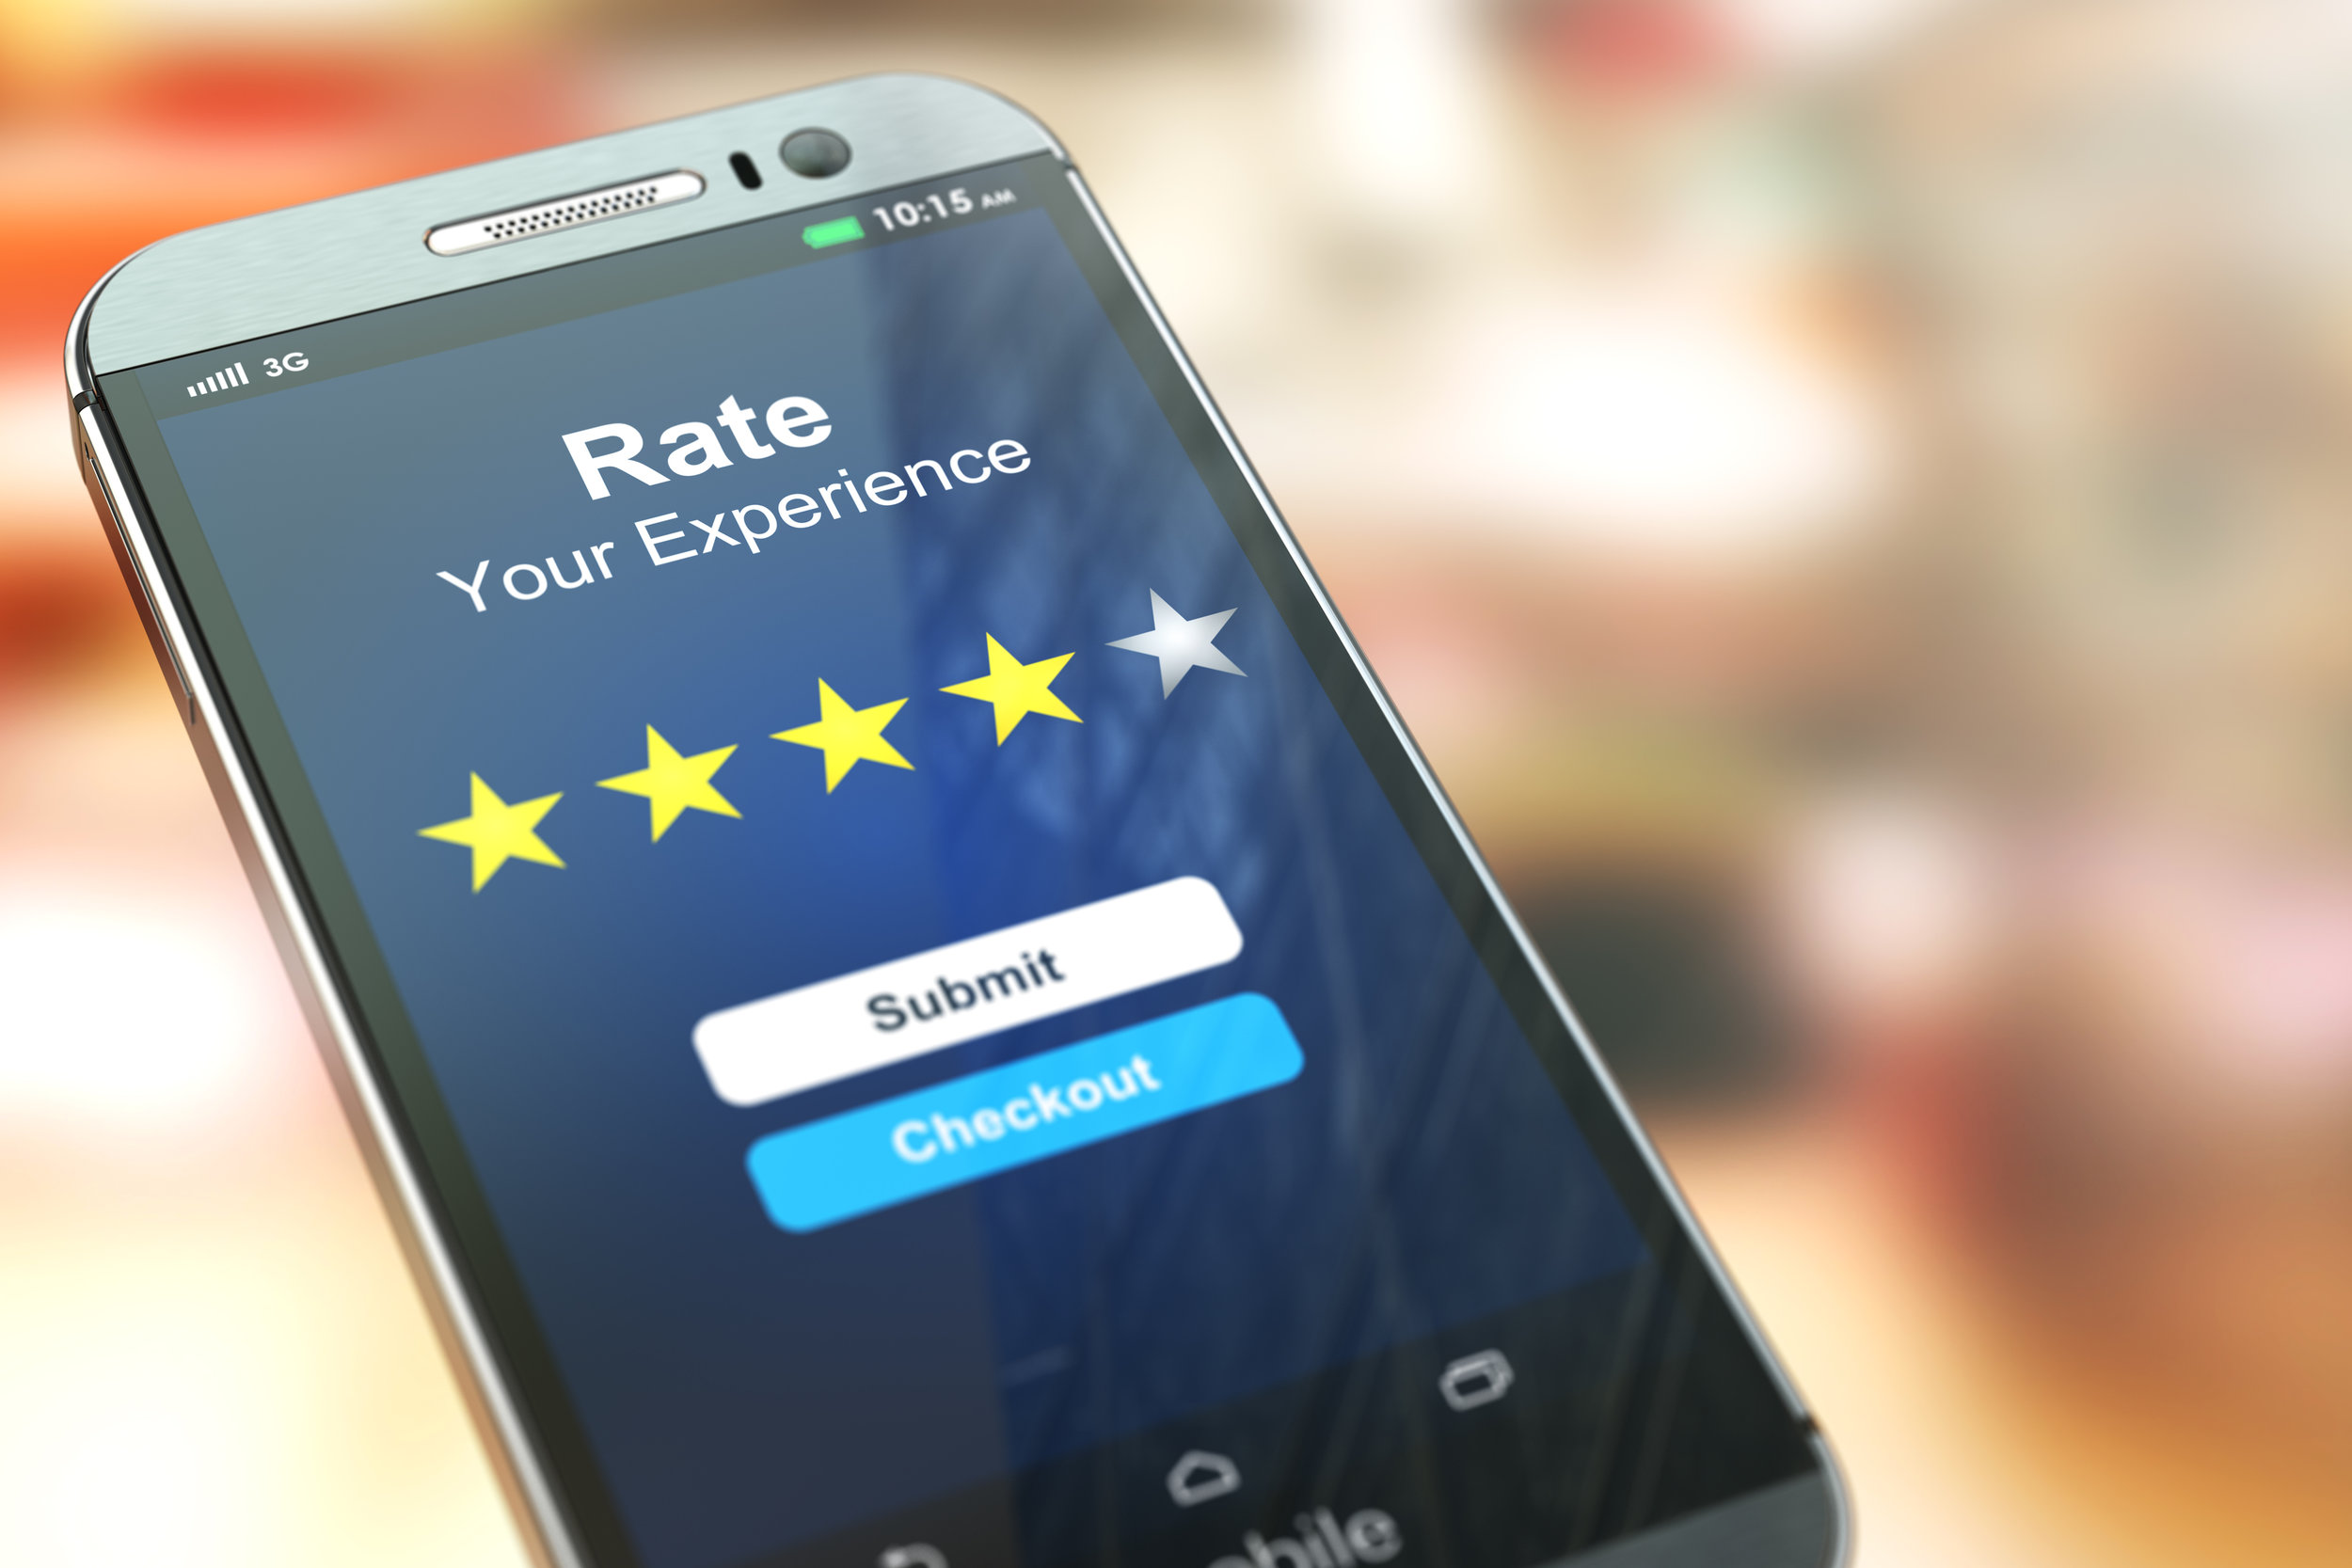 Smartphone or mobile phone with text rate your experience on the